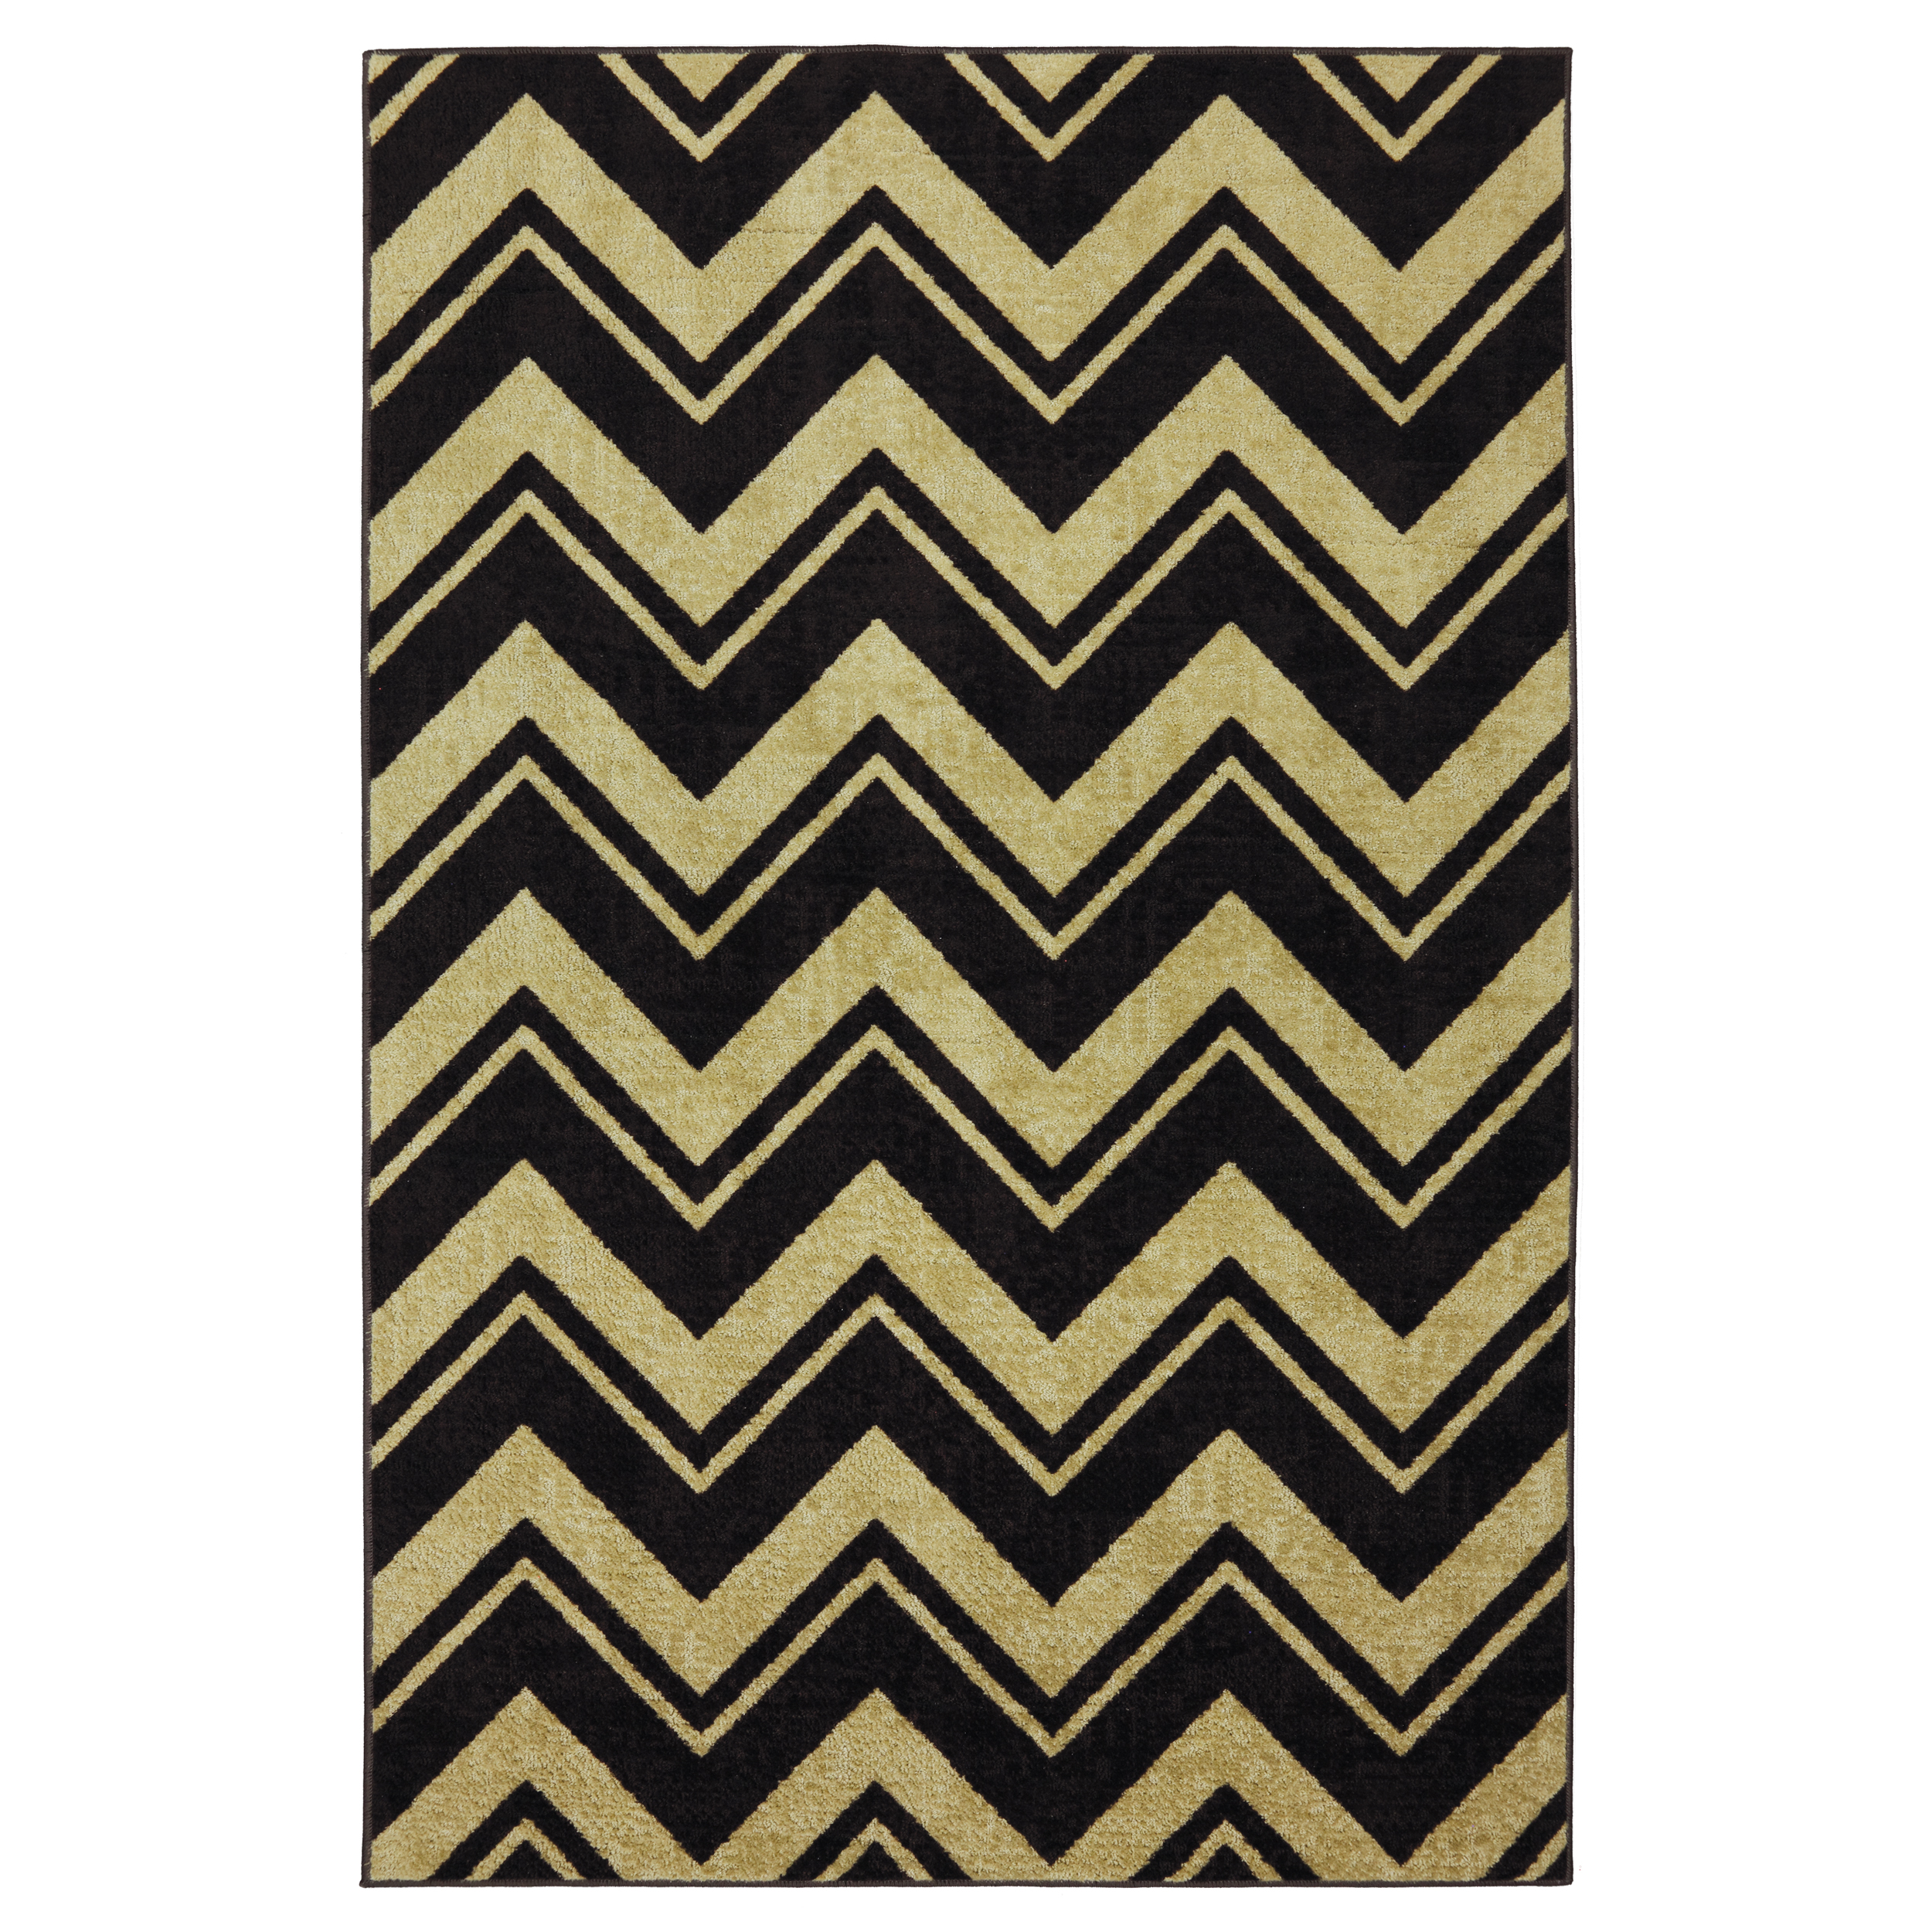 11575_440_060096.jpg, LaScala Chevron rug, wayfair, chevron, black and white rug